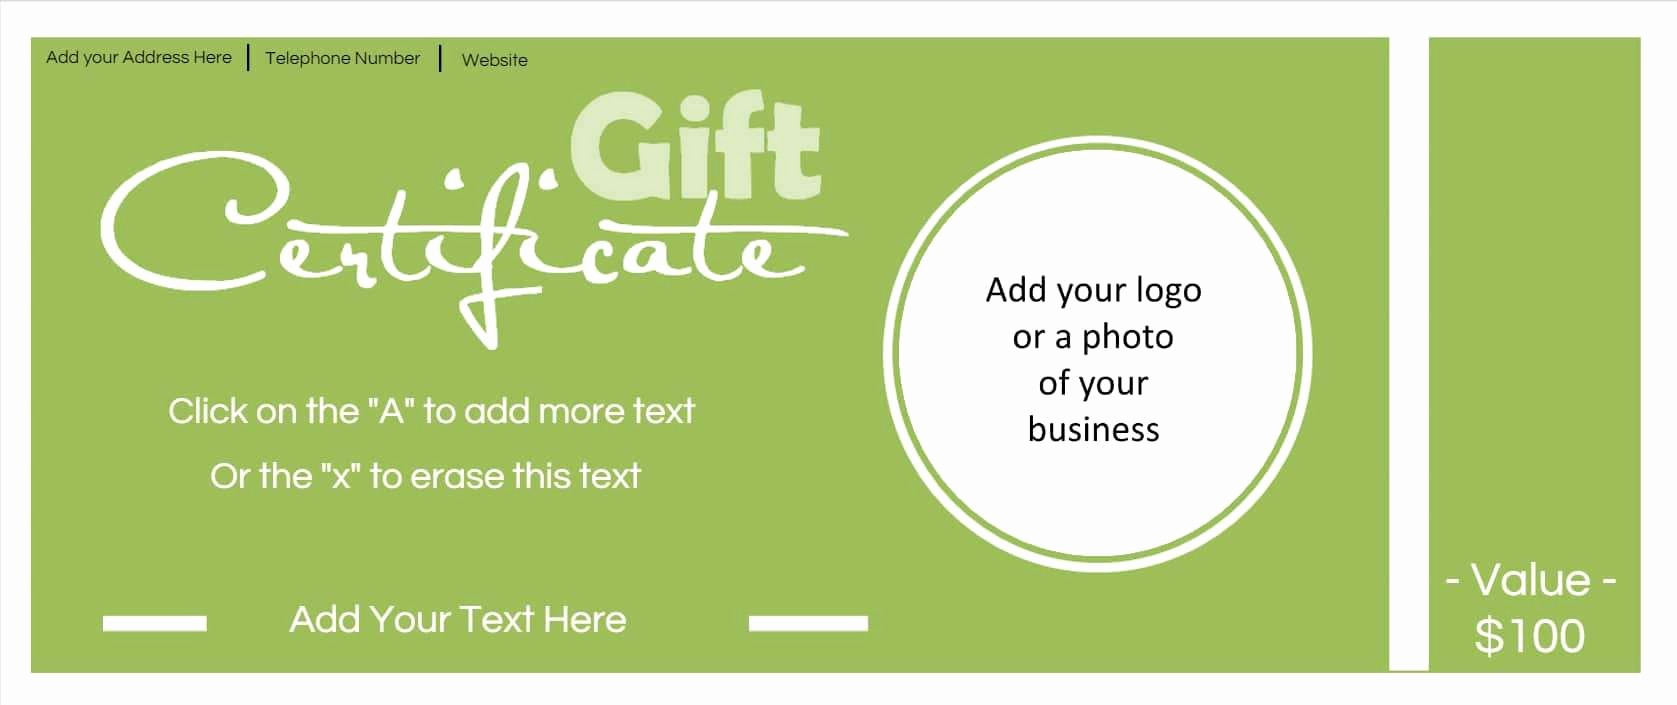 Gift Certificates for Small Business Best Of Gift Certificate Template with Logo